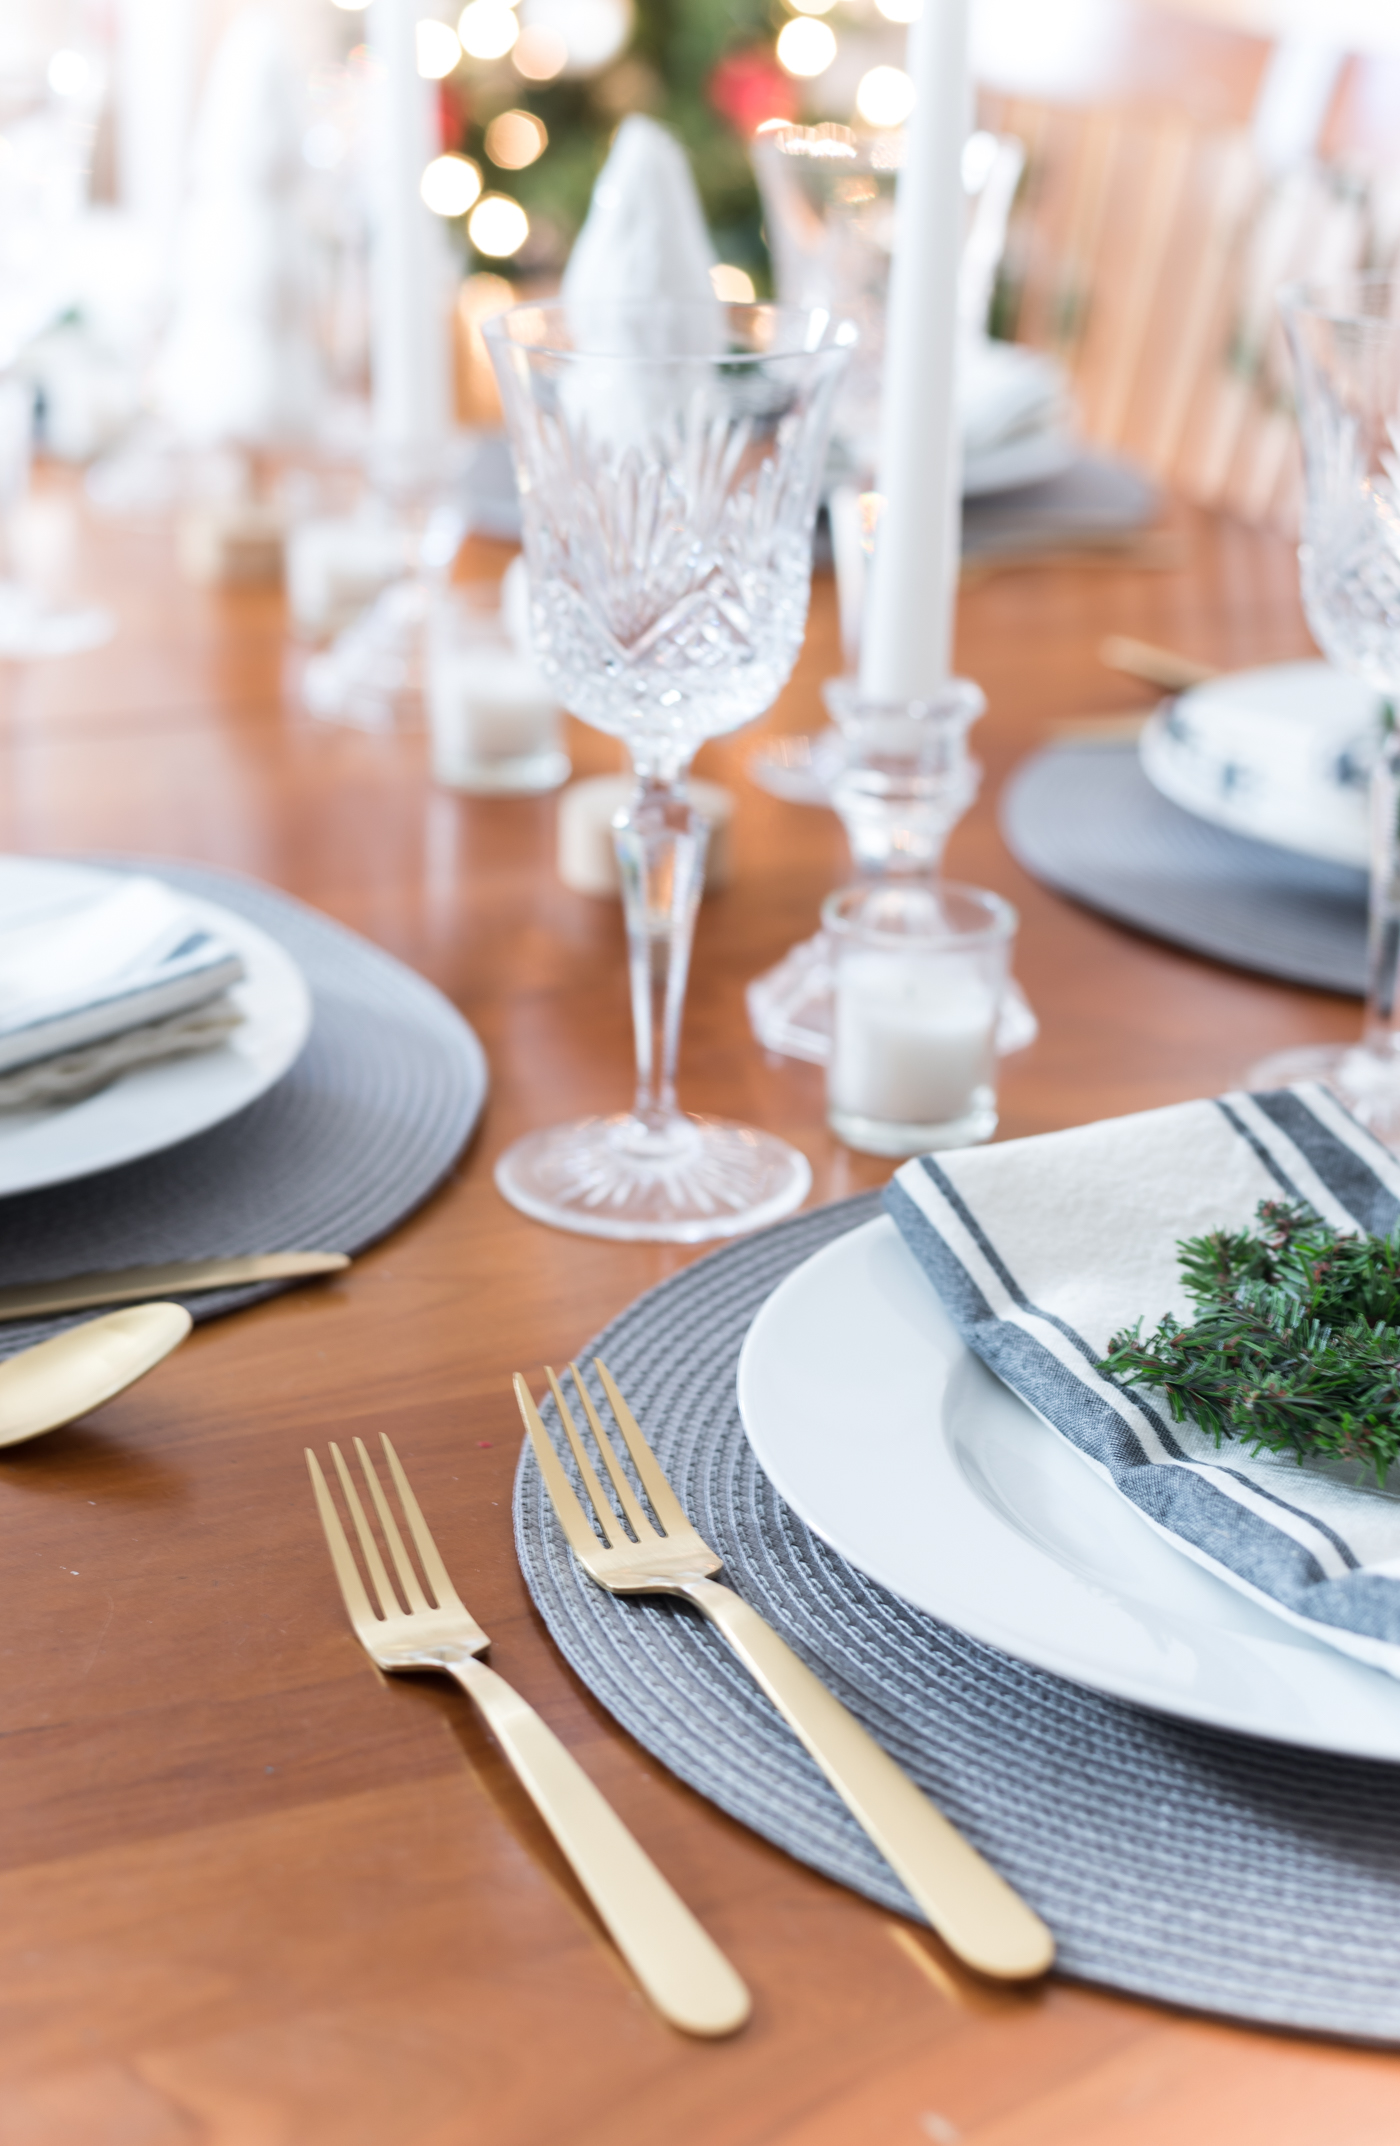 gold forks from target, gold flatware, holiday table with gold utensils